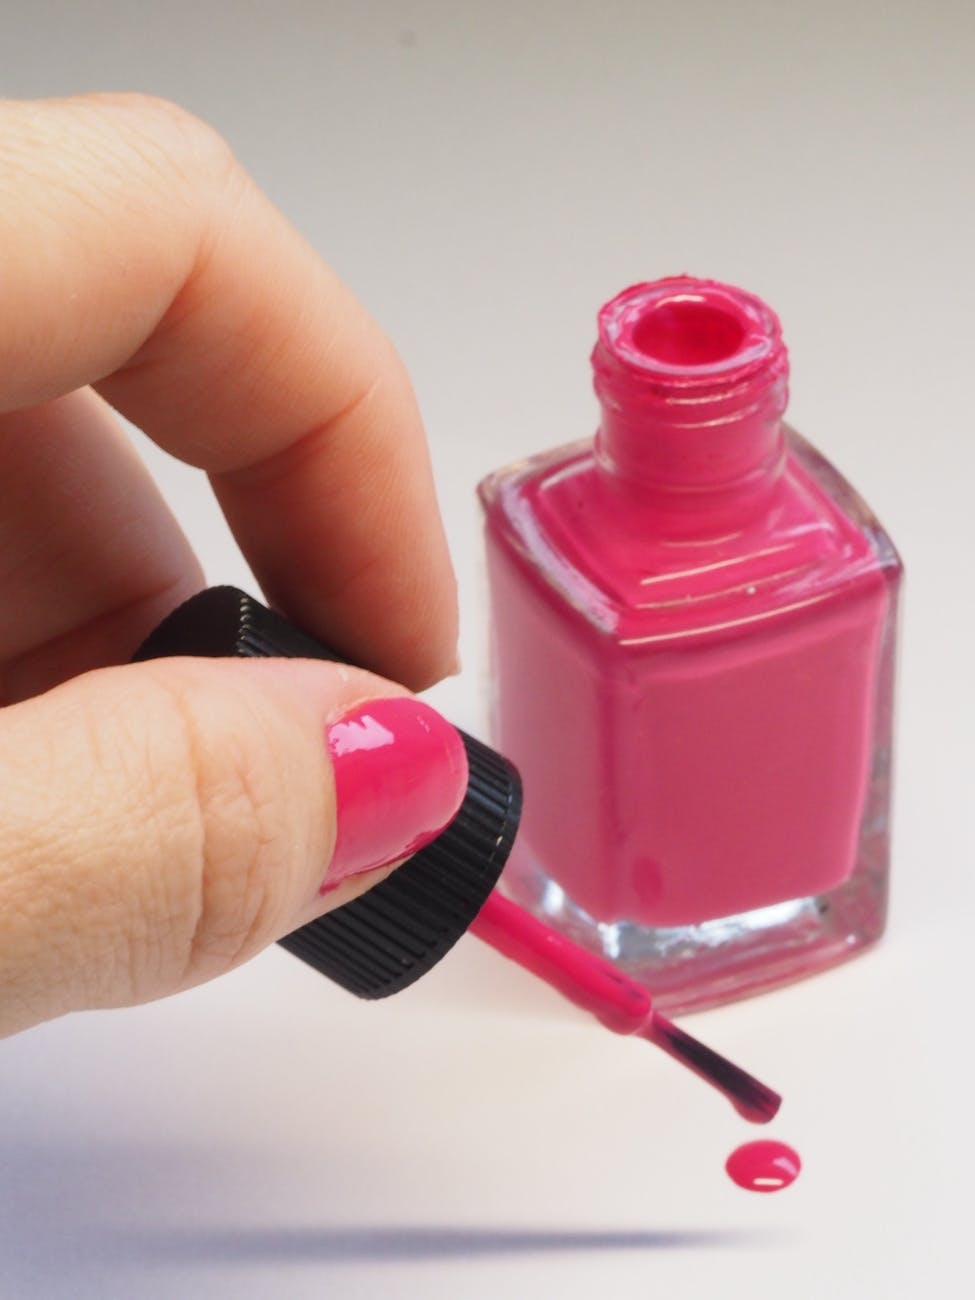 Remove the Labels from Your Clear Nail Polish | How to Make Your Own Cute Nail Polish, check it out at https://youresopretty.com/diy-cute-nail-polish/